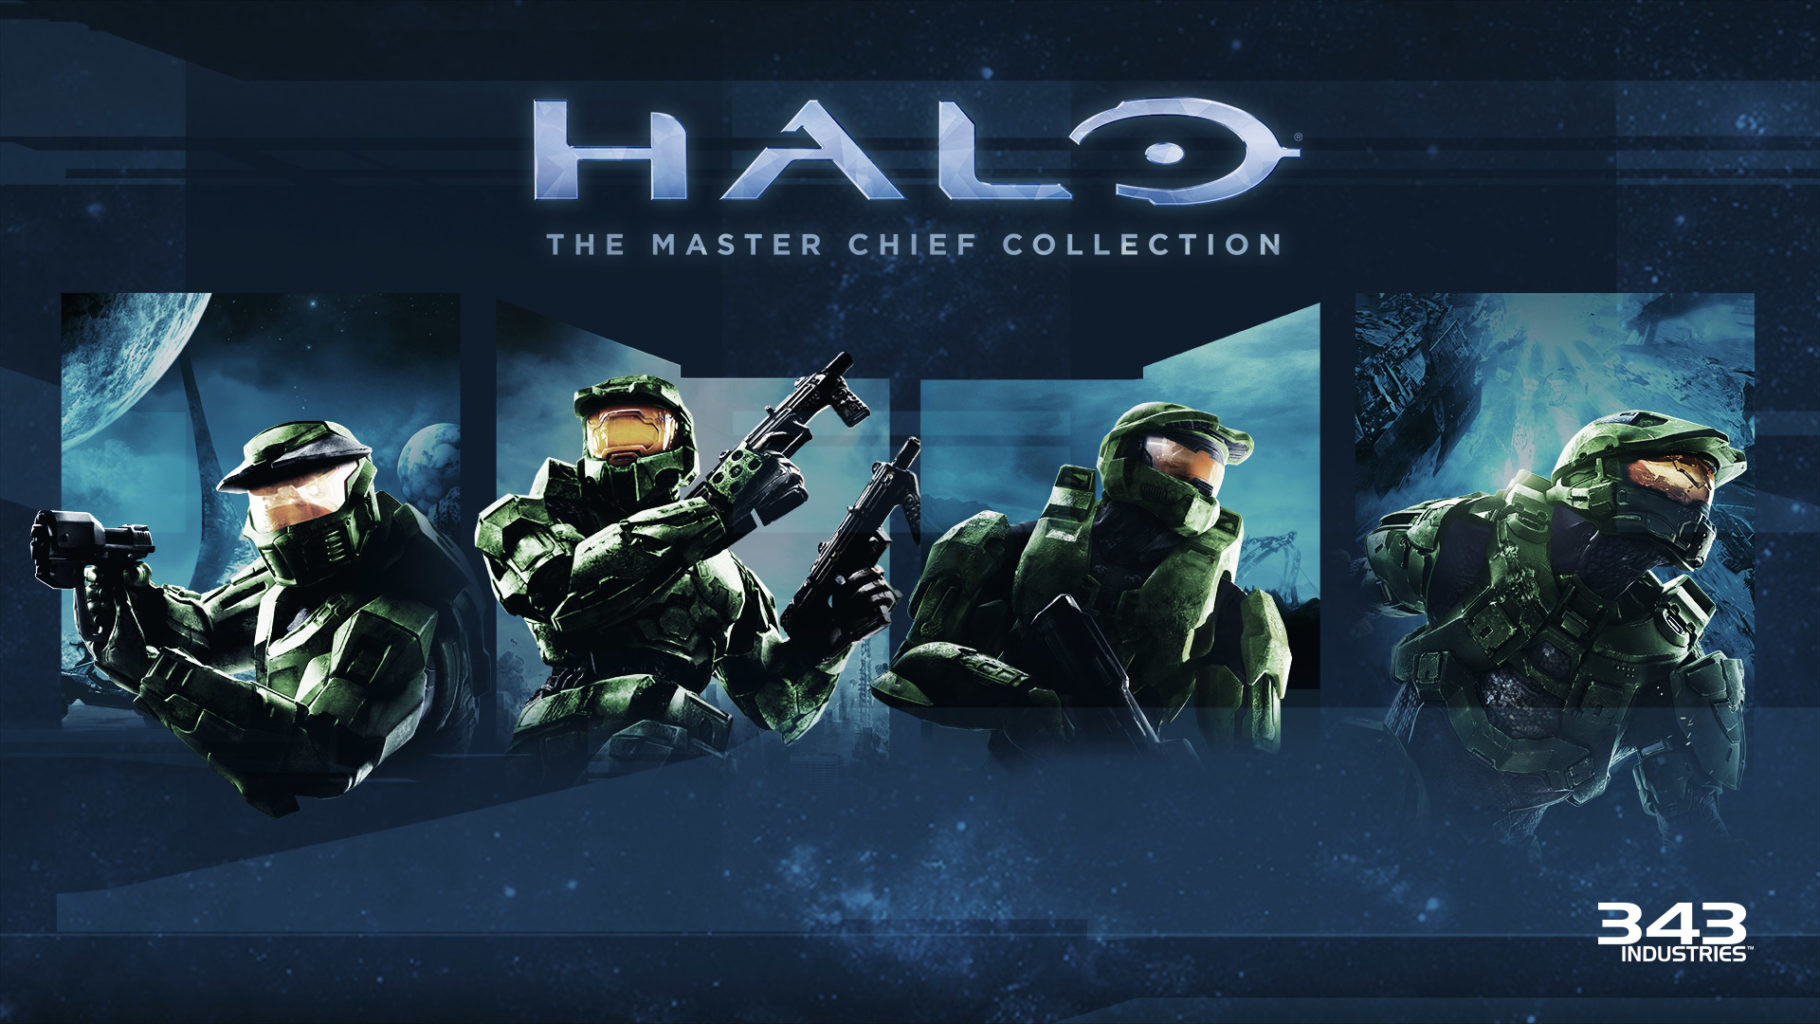 Halo-The-Master-Chief-Collection-Cover.jpg